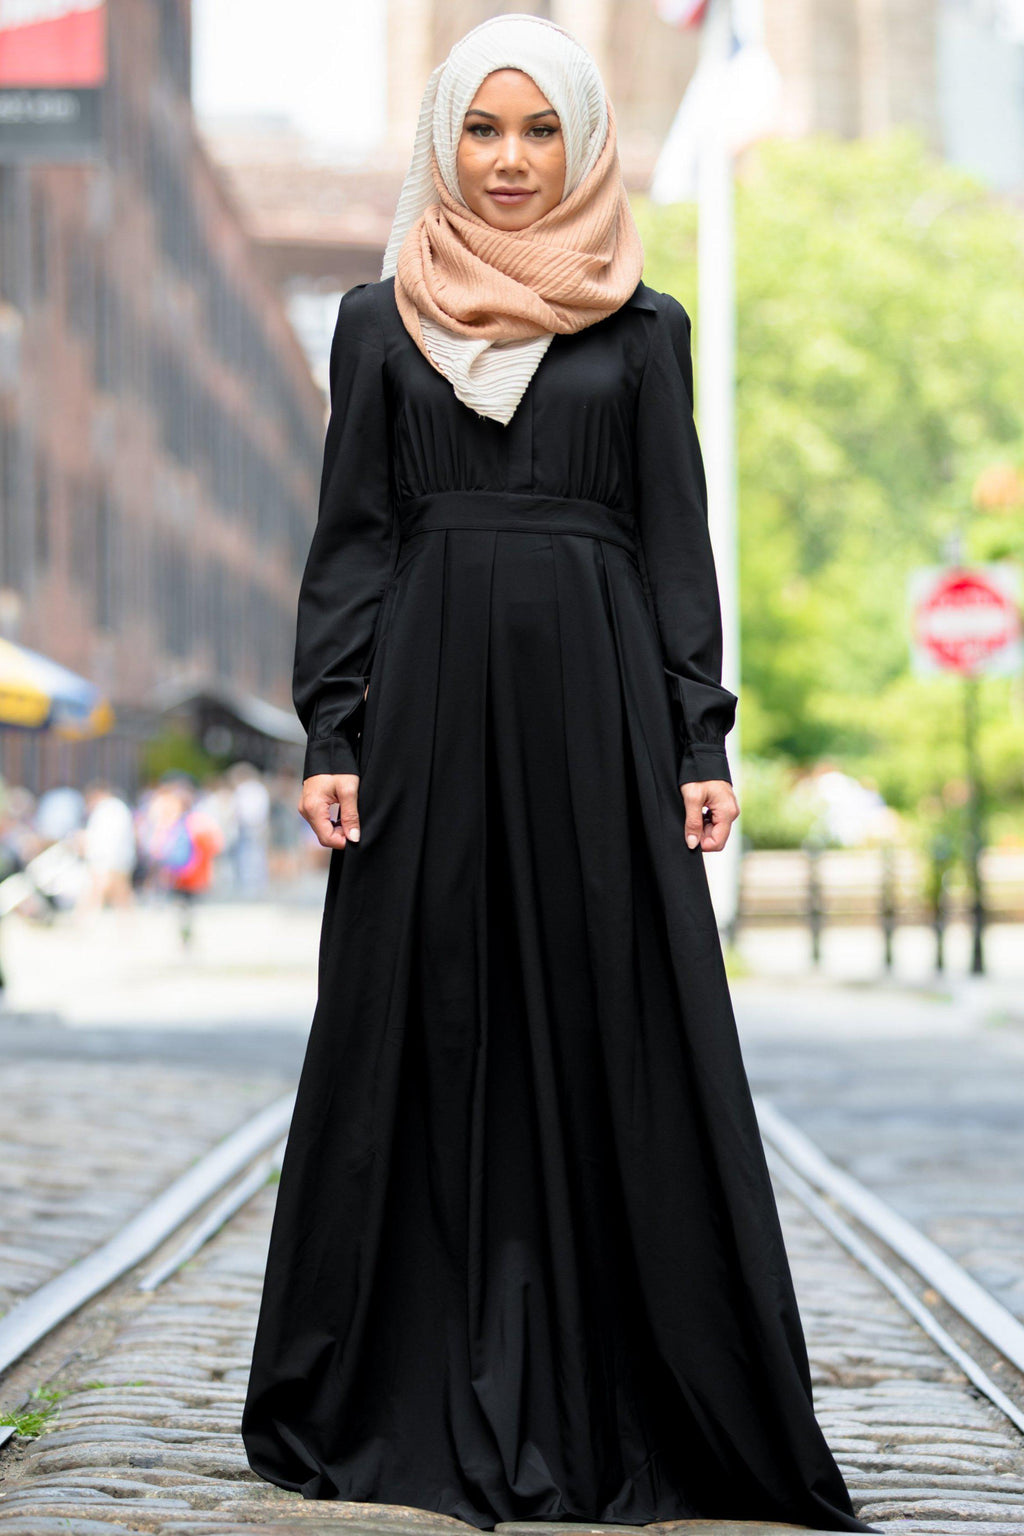 Image result for Black Abaya Dress